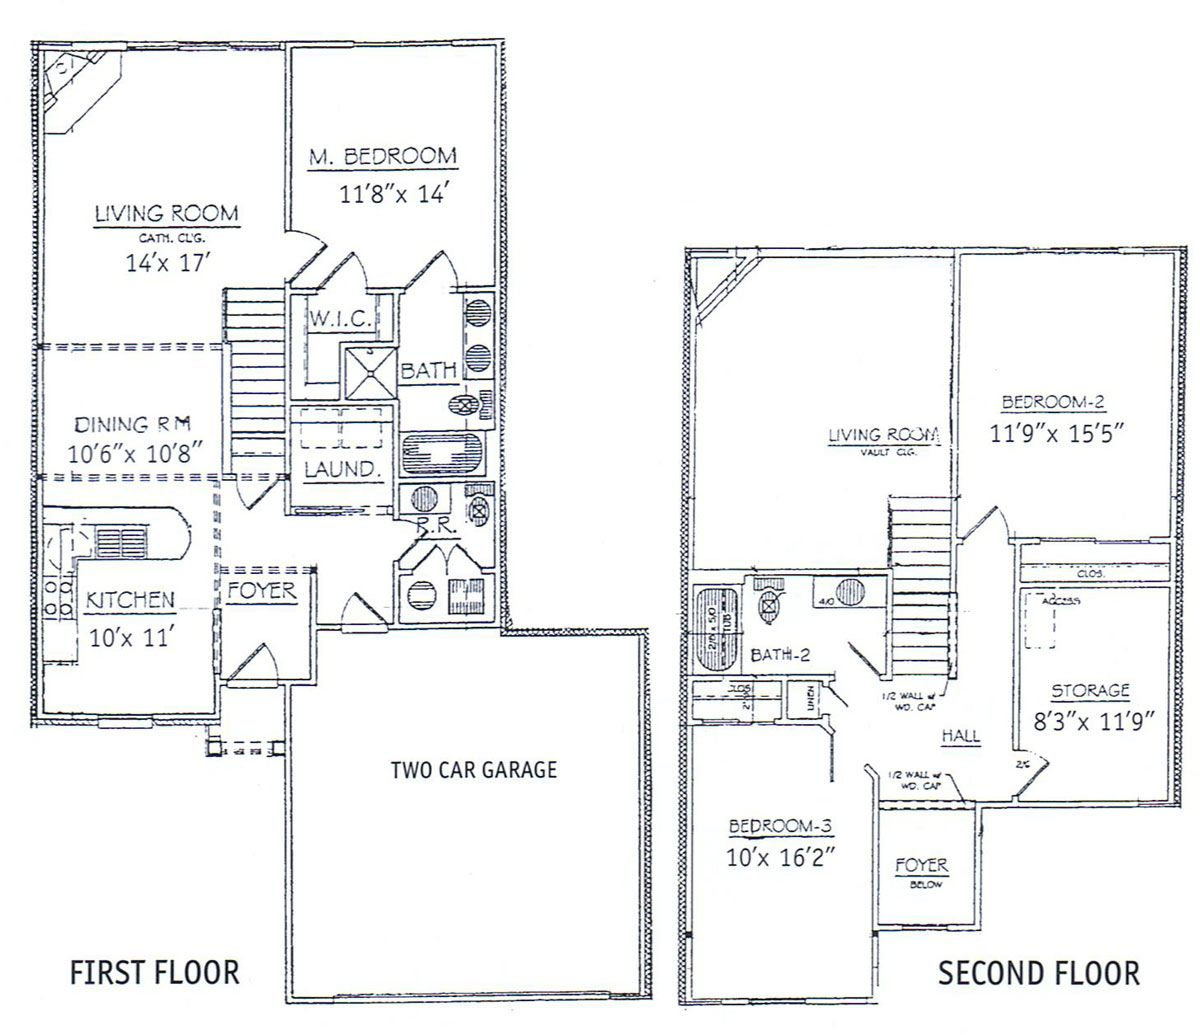 3 Bedroom House Floor Plans: 3 Bedrooms Floor Plans 2 Story